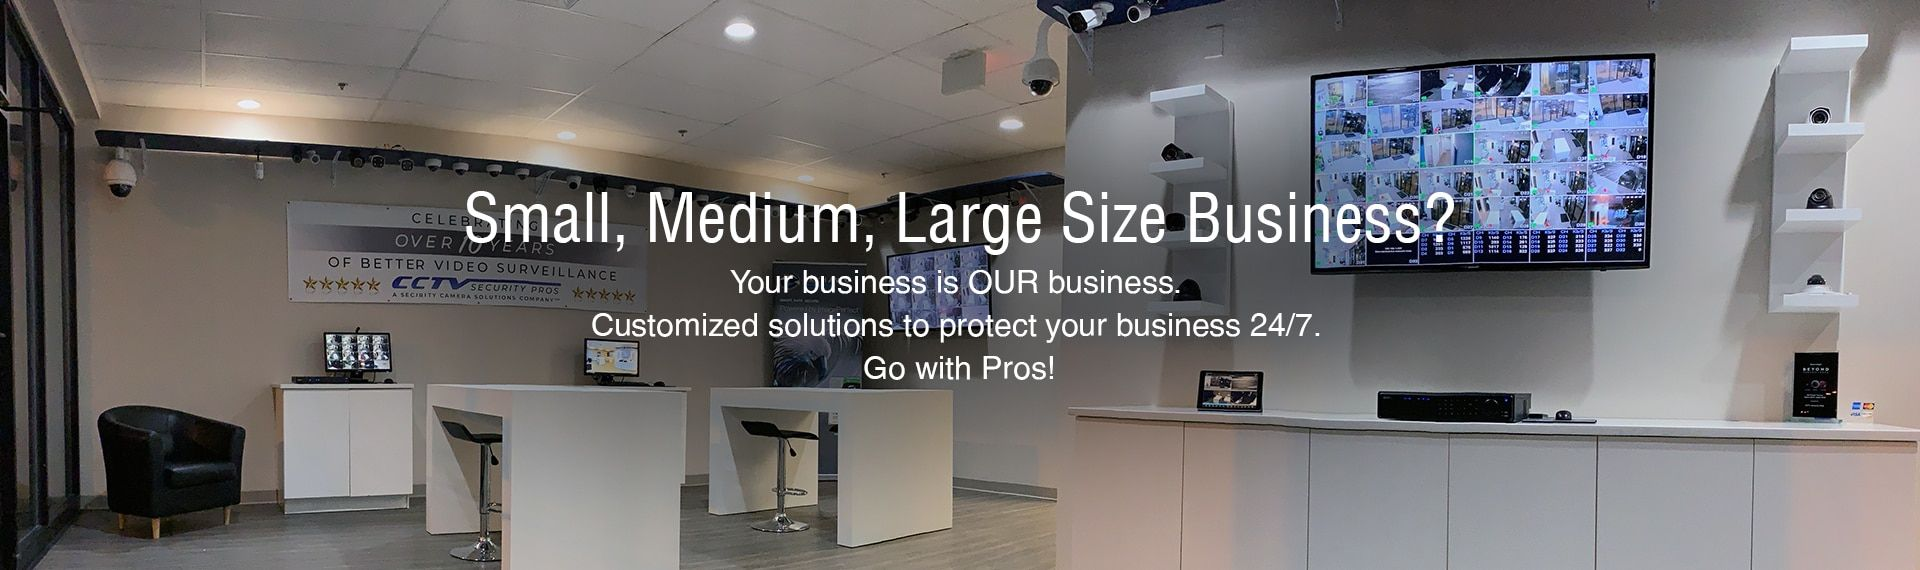 Customized solutions to protect your small/medium/large size business